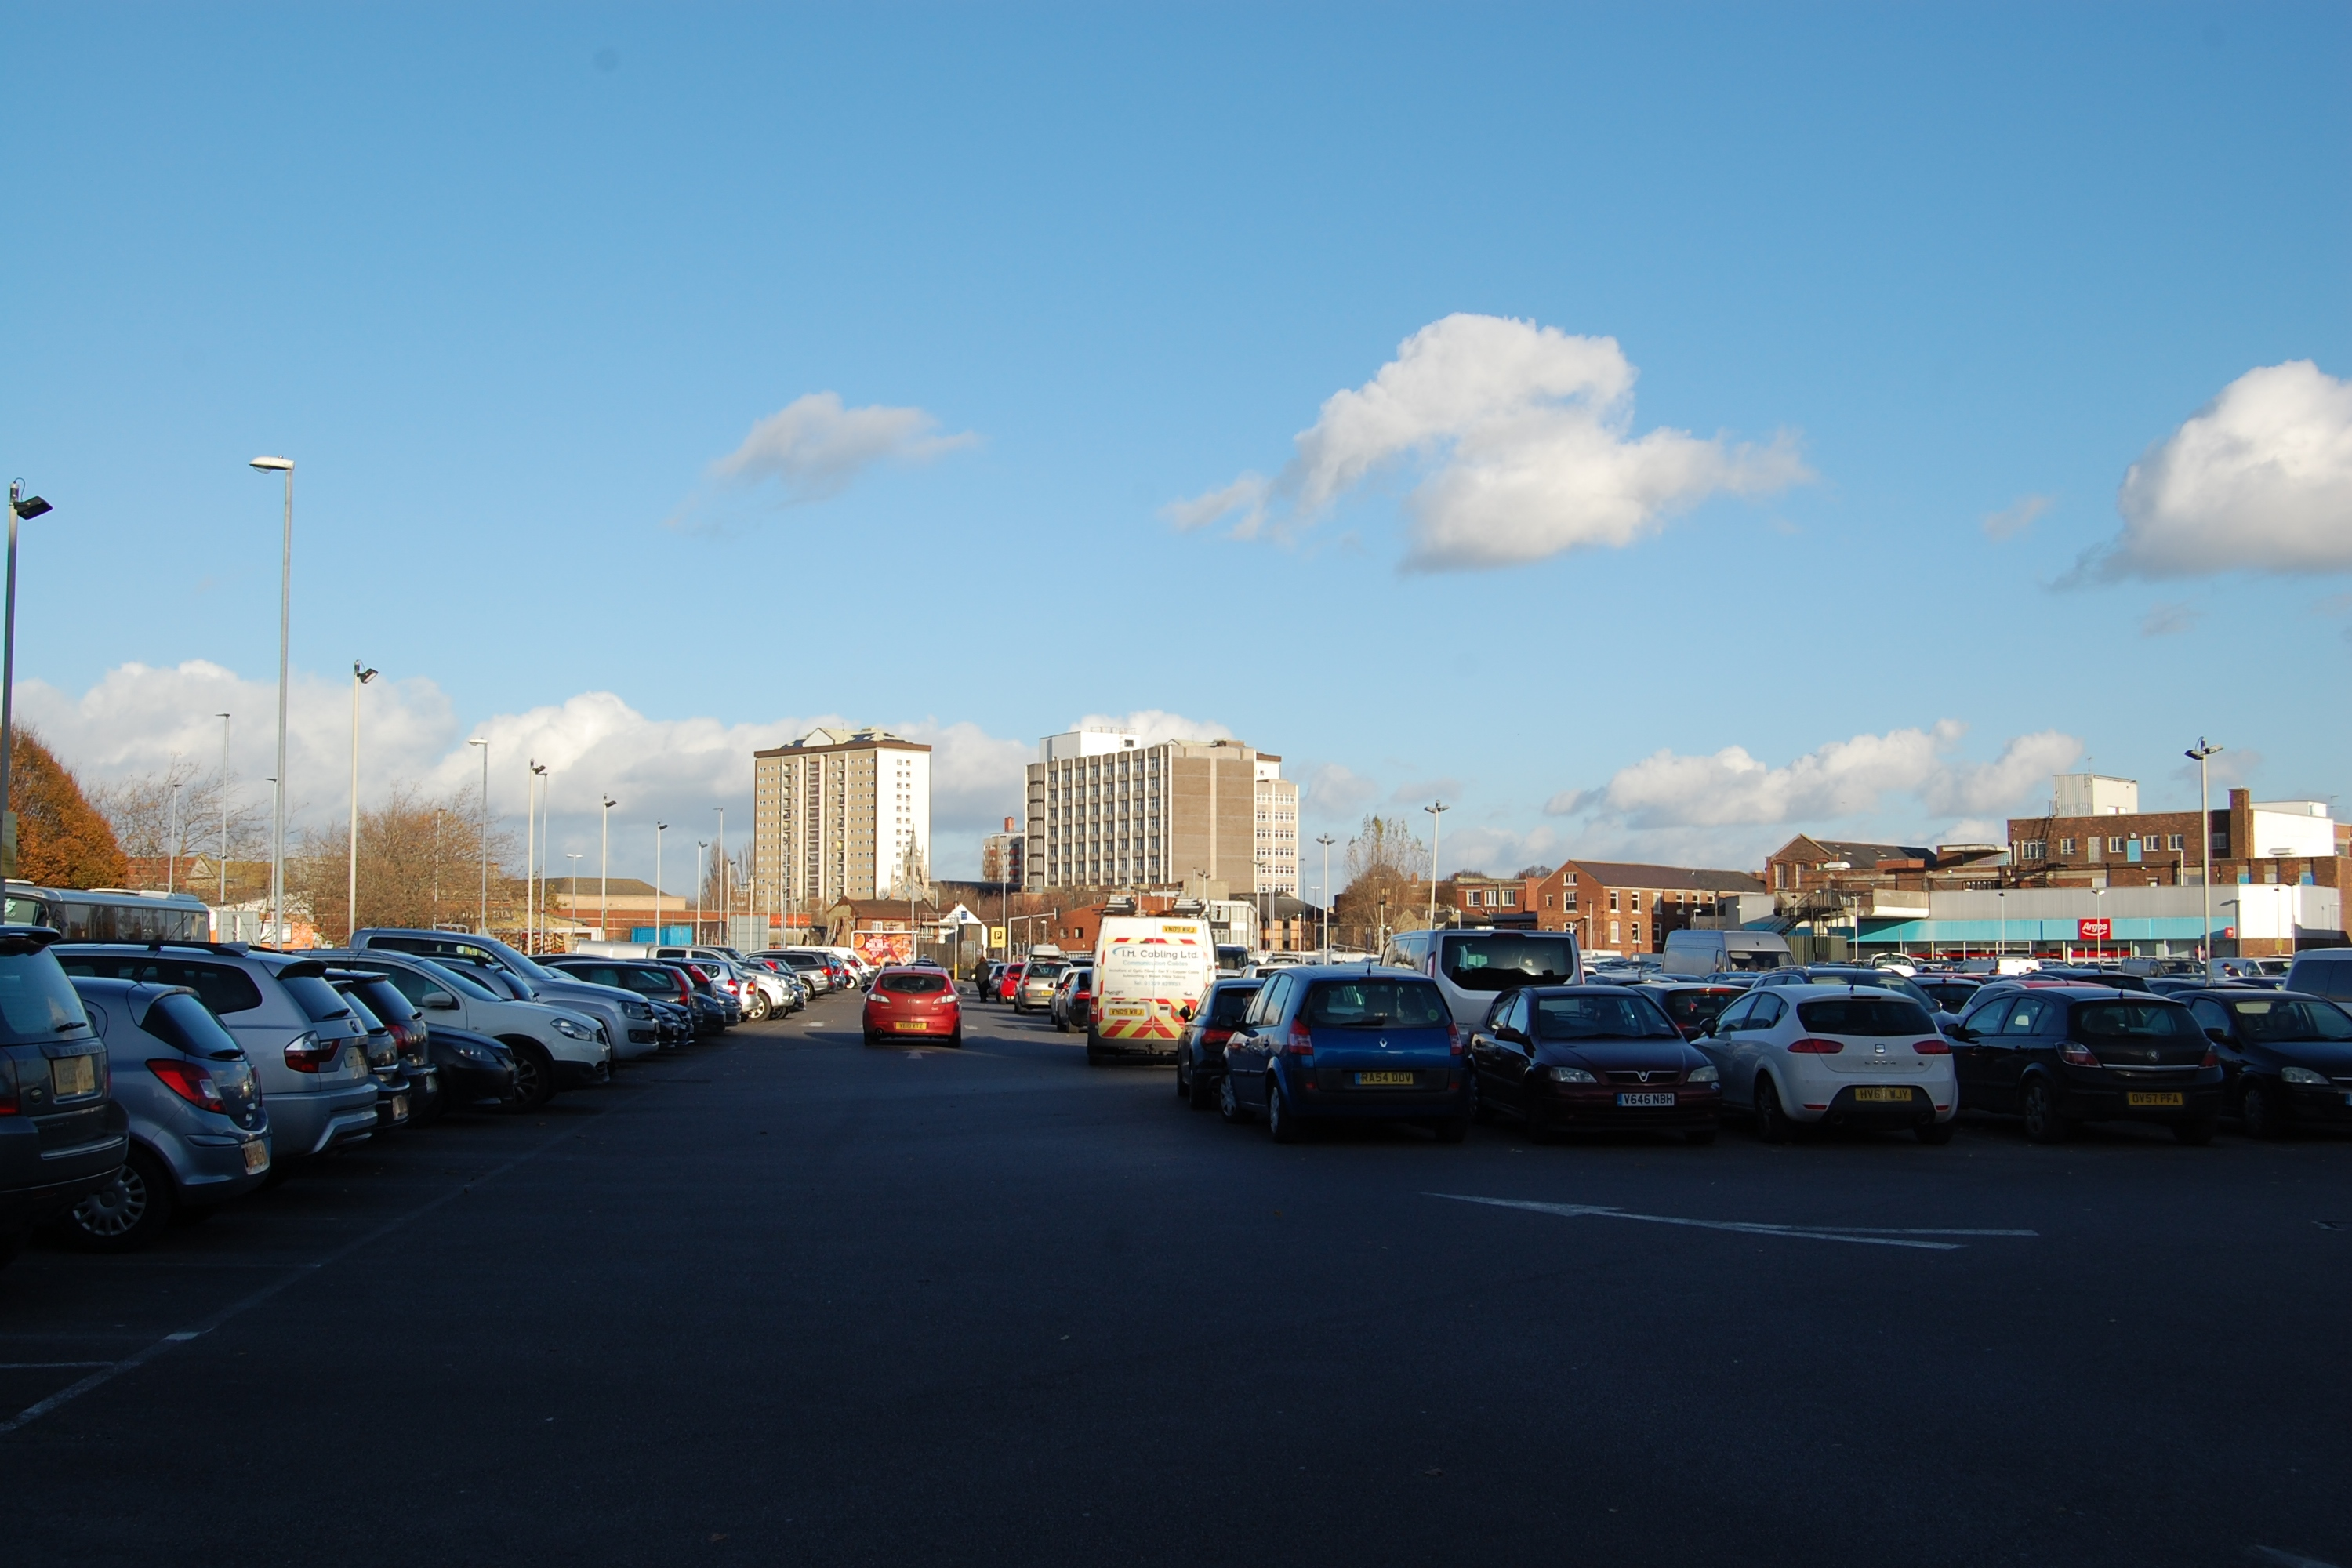 View_across_Car_Park_on_site_of_Tricorn_Centre%2C_Portsmouth_%28November_2017%29.JPG?profile=RESIZE_710x